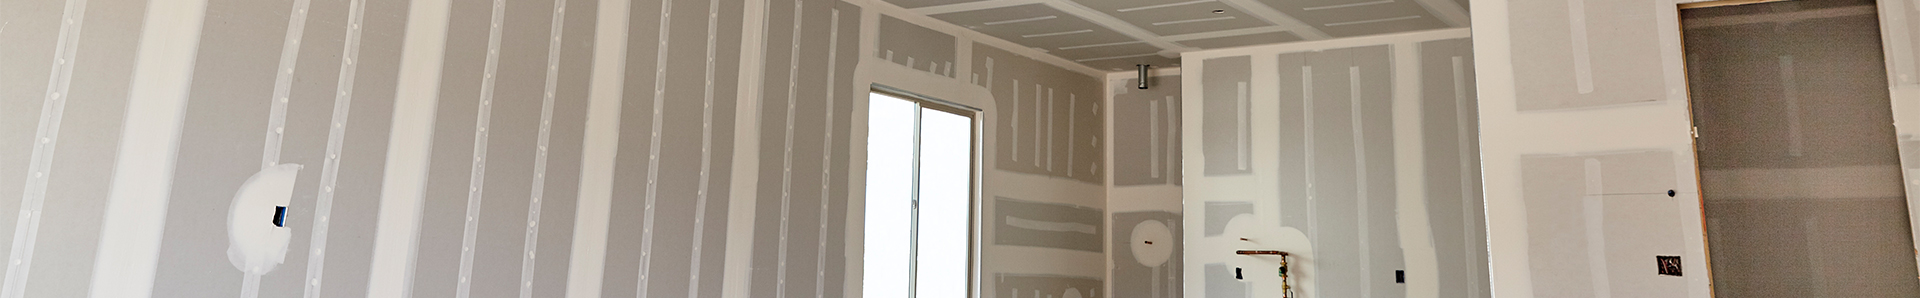 Image of Drywall applied to room